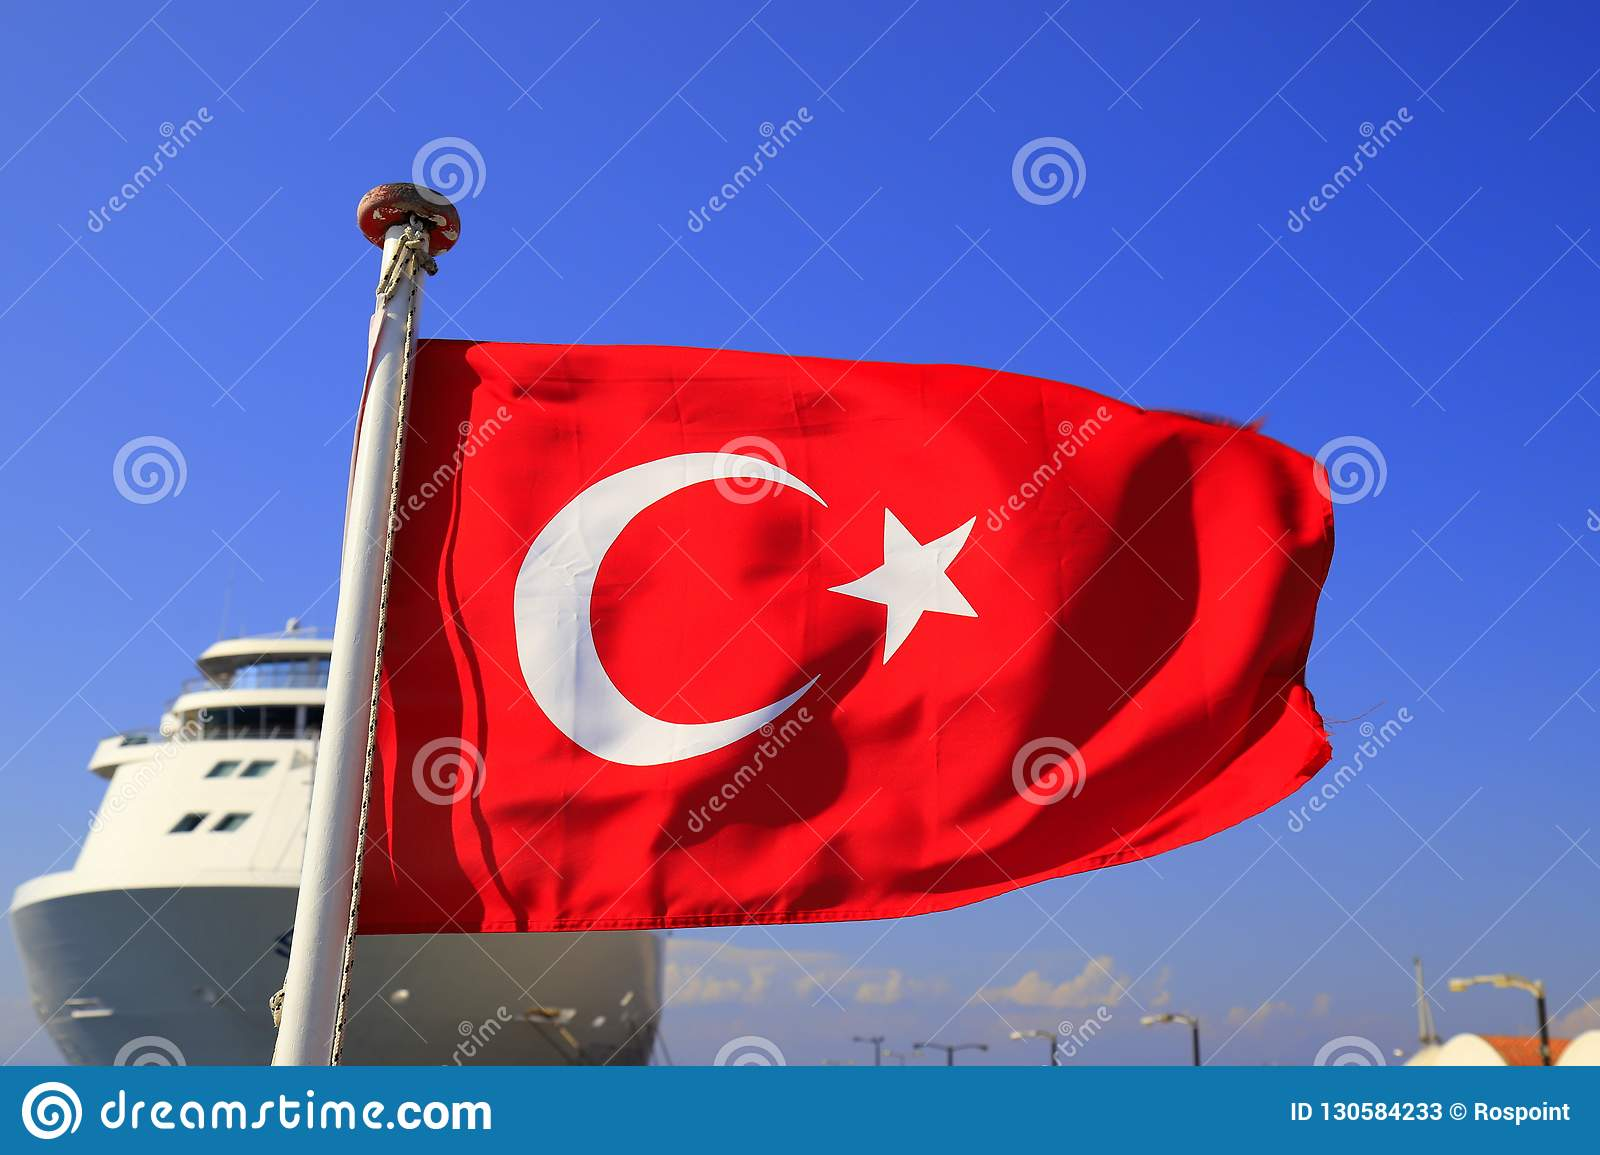 Red National Flag of Turkey with a half month and a star against the blue sky and a large white ocean liner, Turkish state symbol